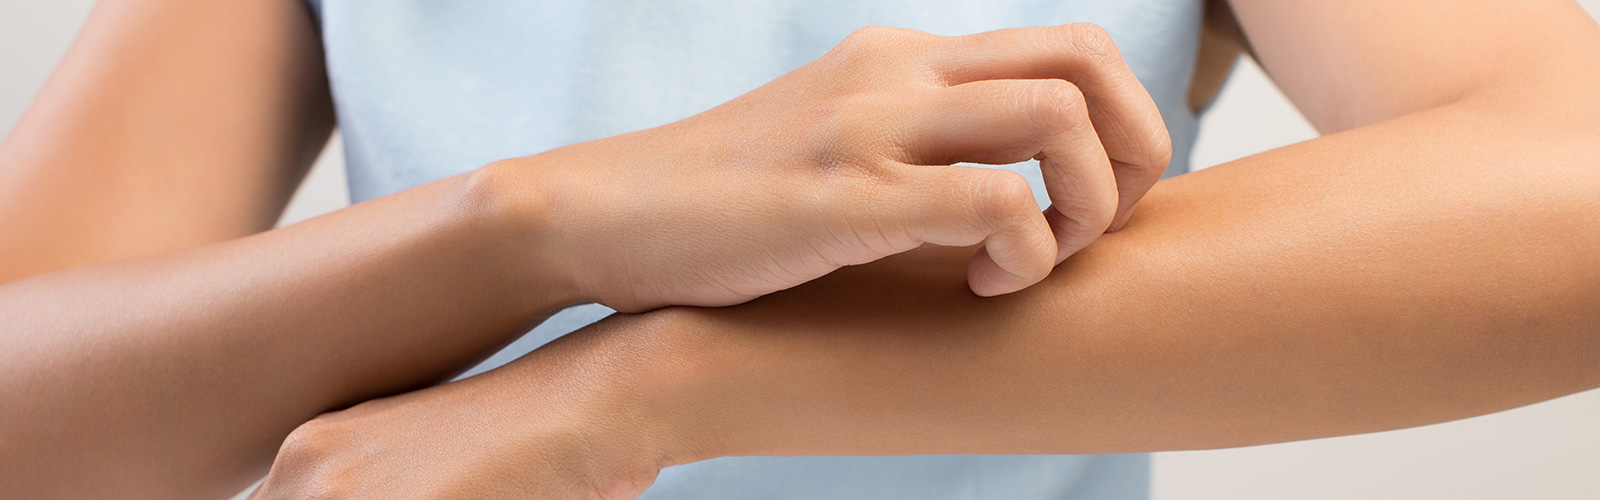 Westlake dermatologists explain the causes and treatments of eczema